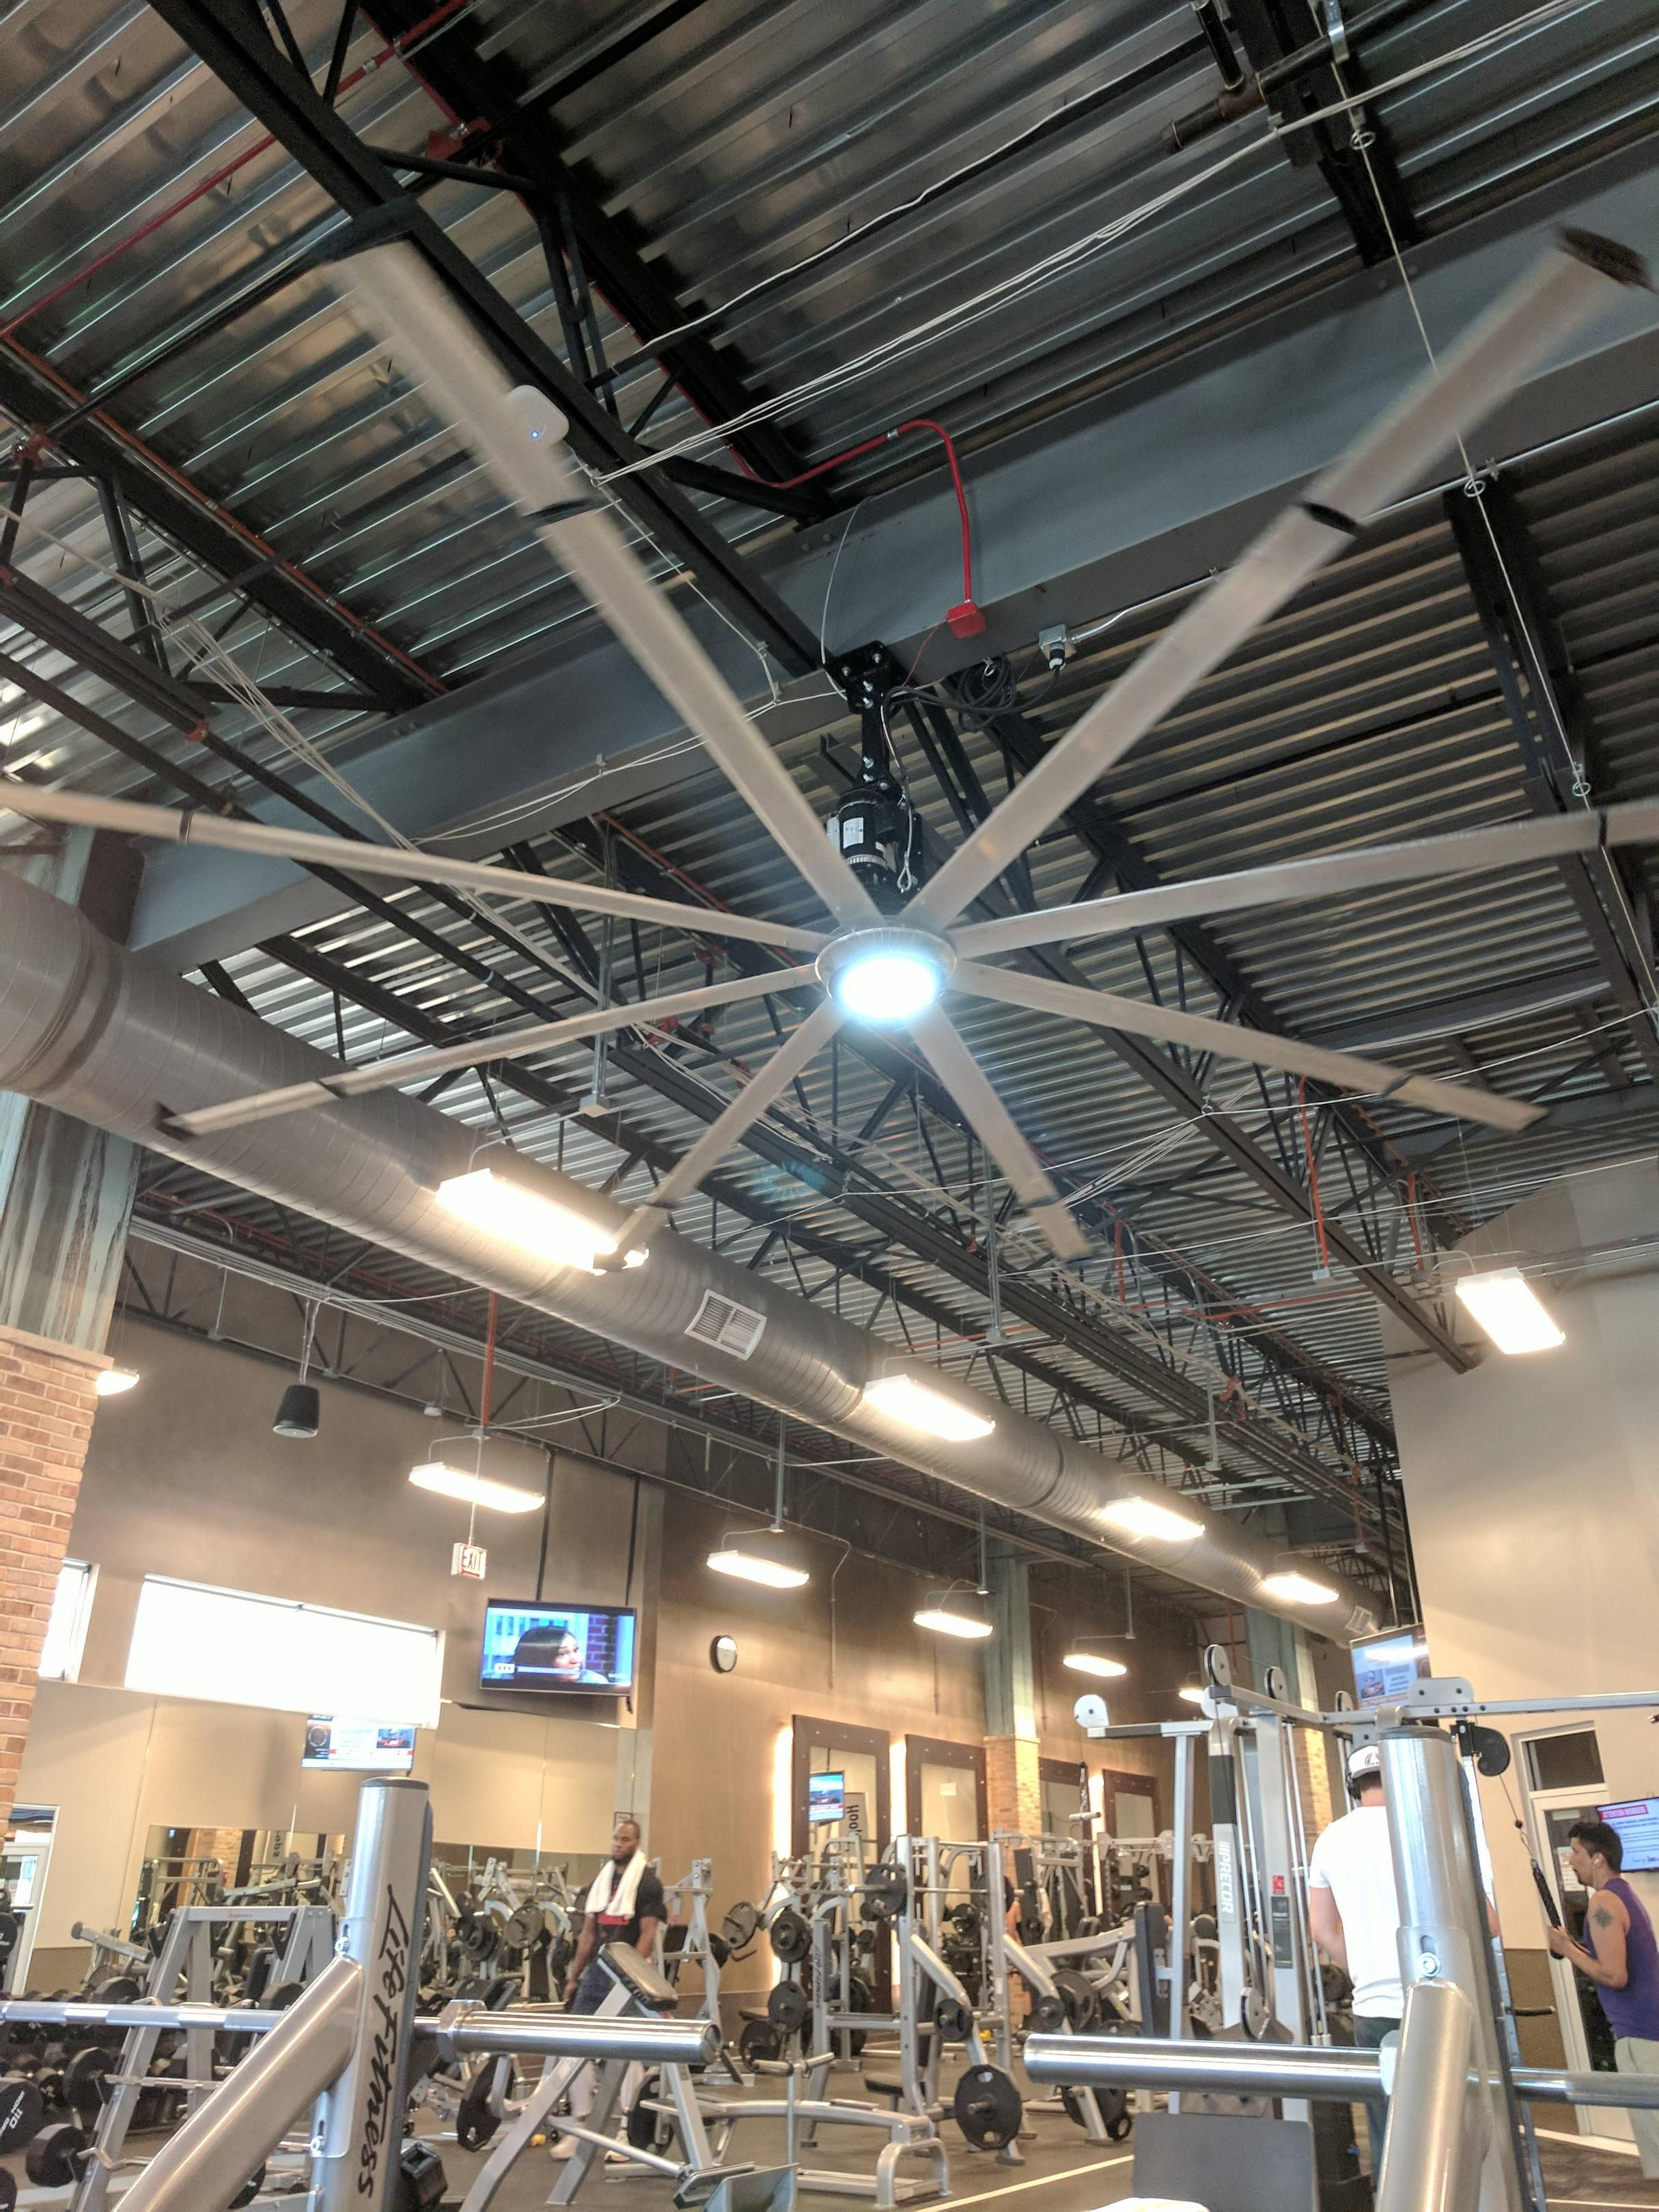 This huge ceiling fan at my gym Pets Funny Pinterest